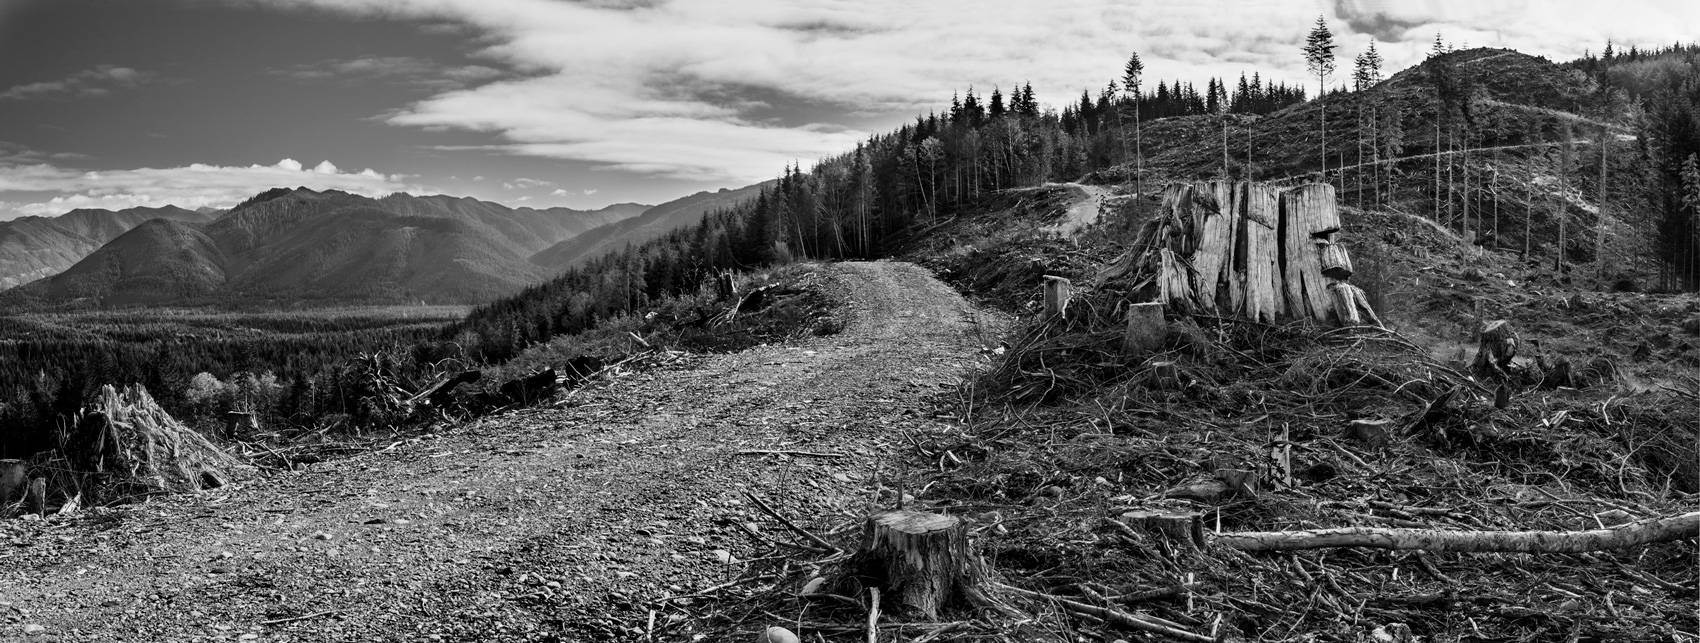 A black and white photograph of a road leading to a clearcut landscape